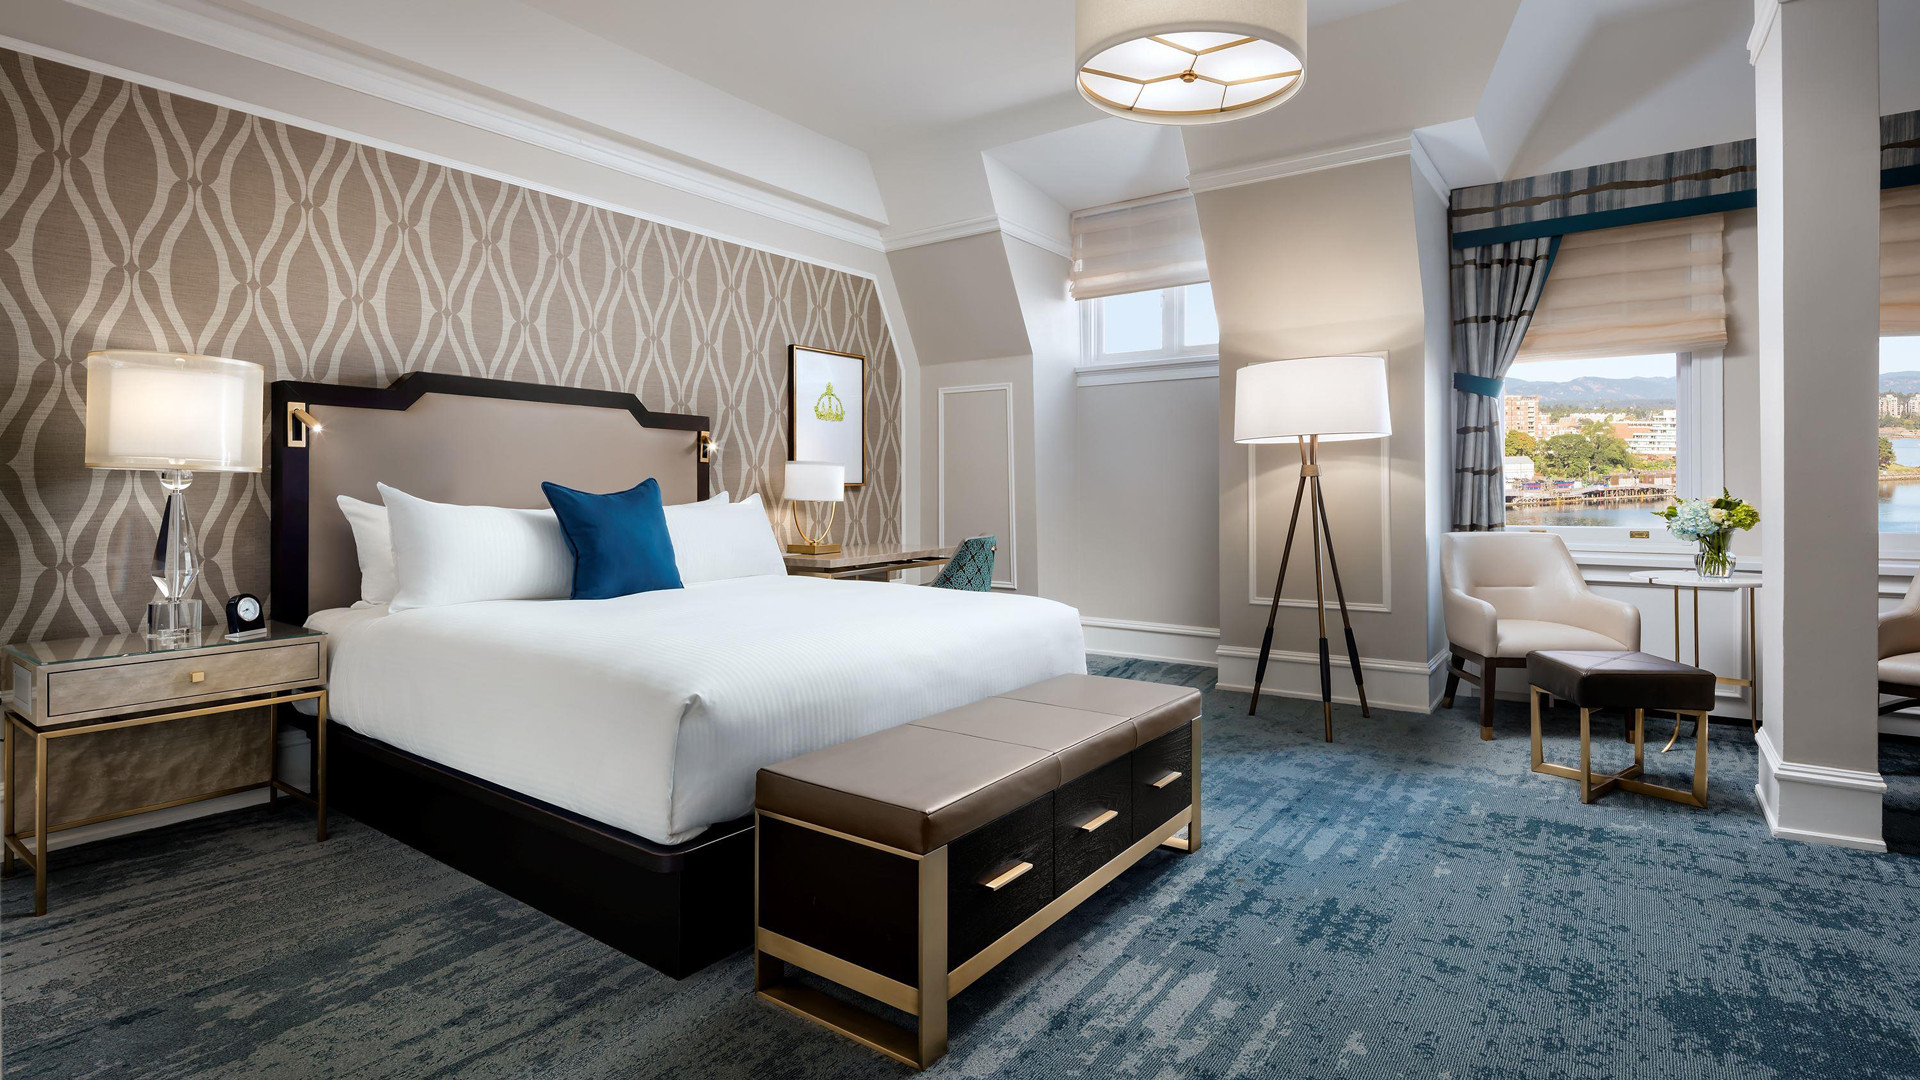 Restaurants in Victoria, B.C. plus hotels, activities and more | The Fairmont Empress Hotel Deluxe Harbor View King guest room